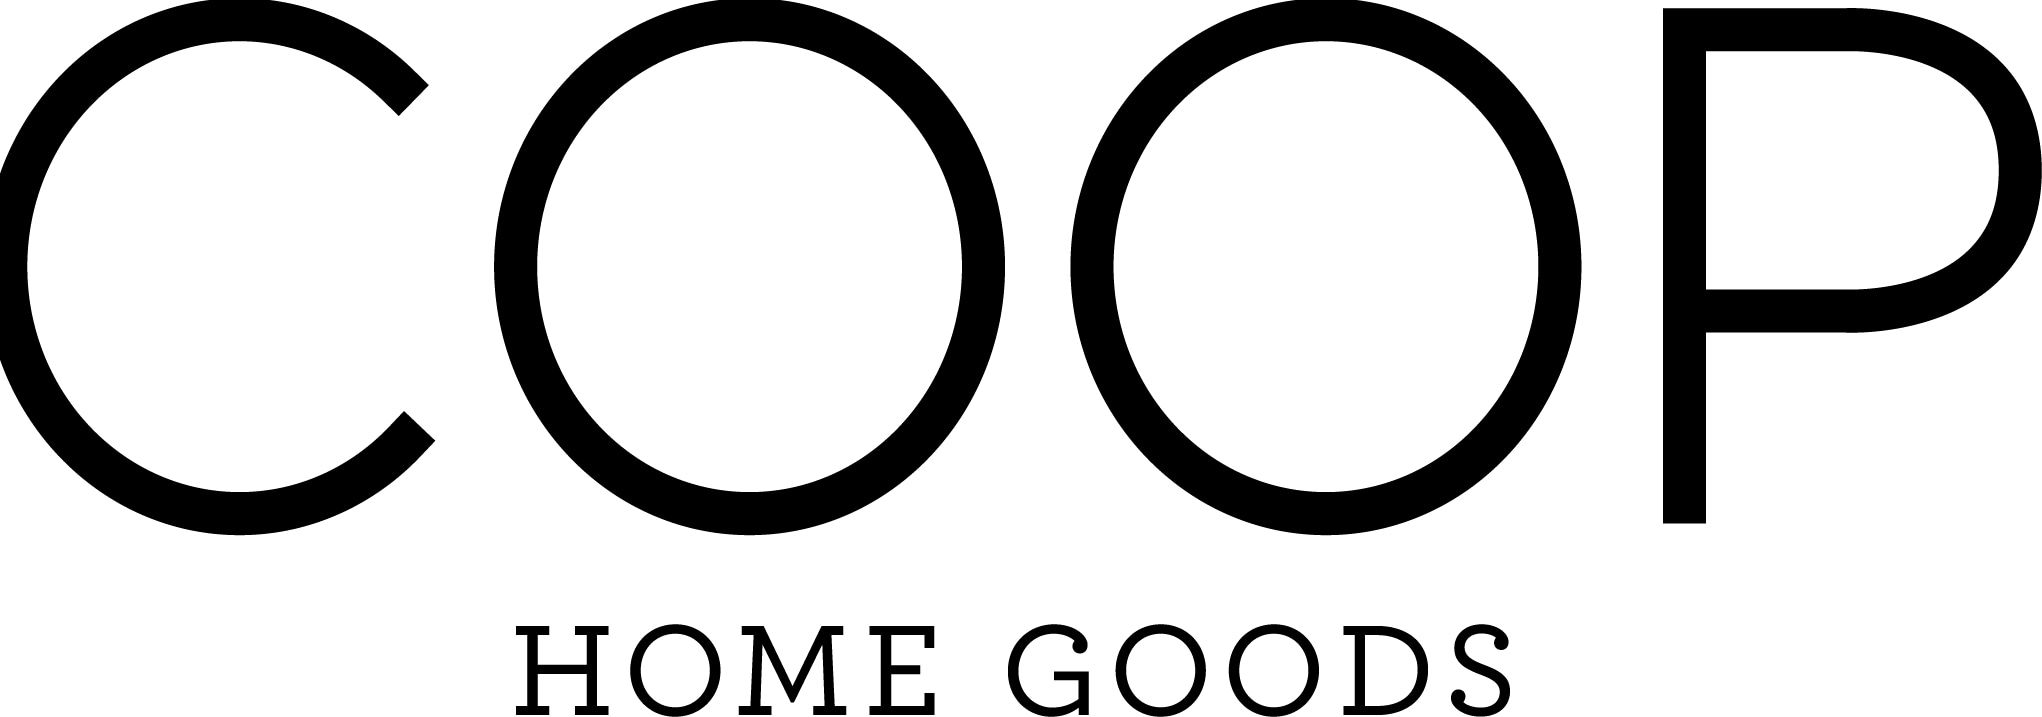 Coop Home Goods promo codes